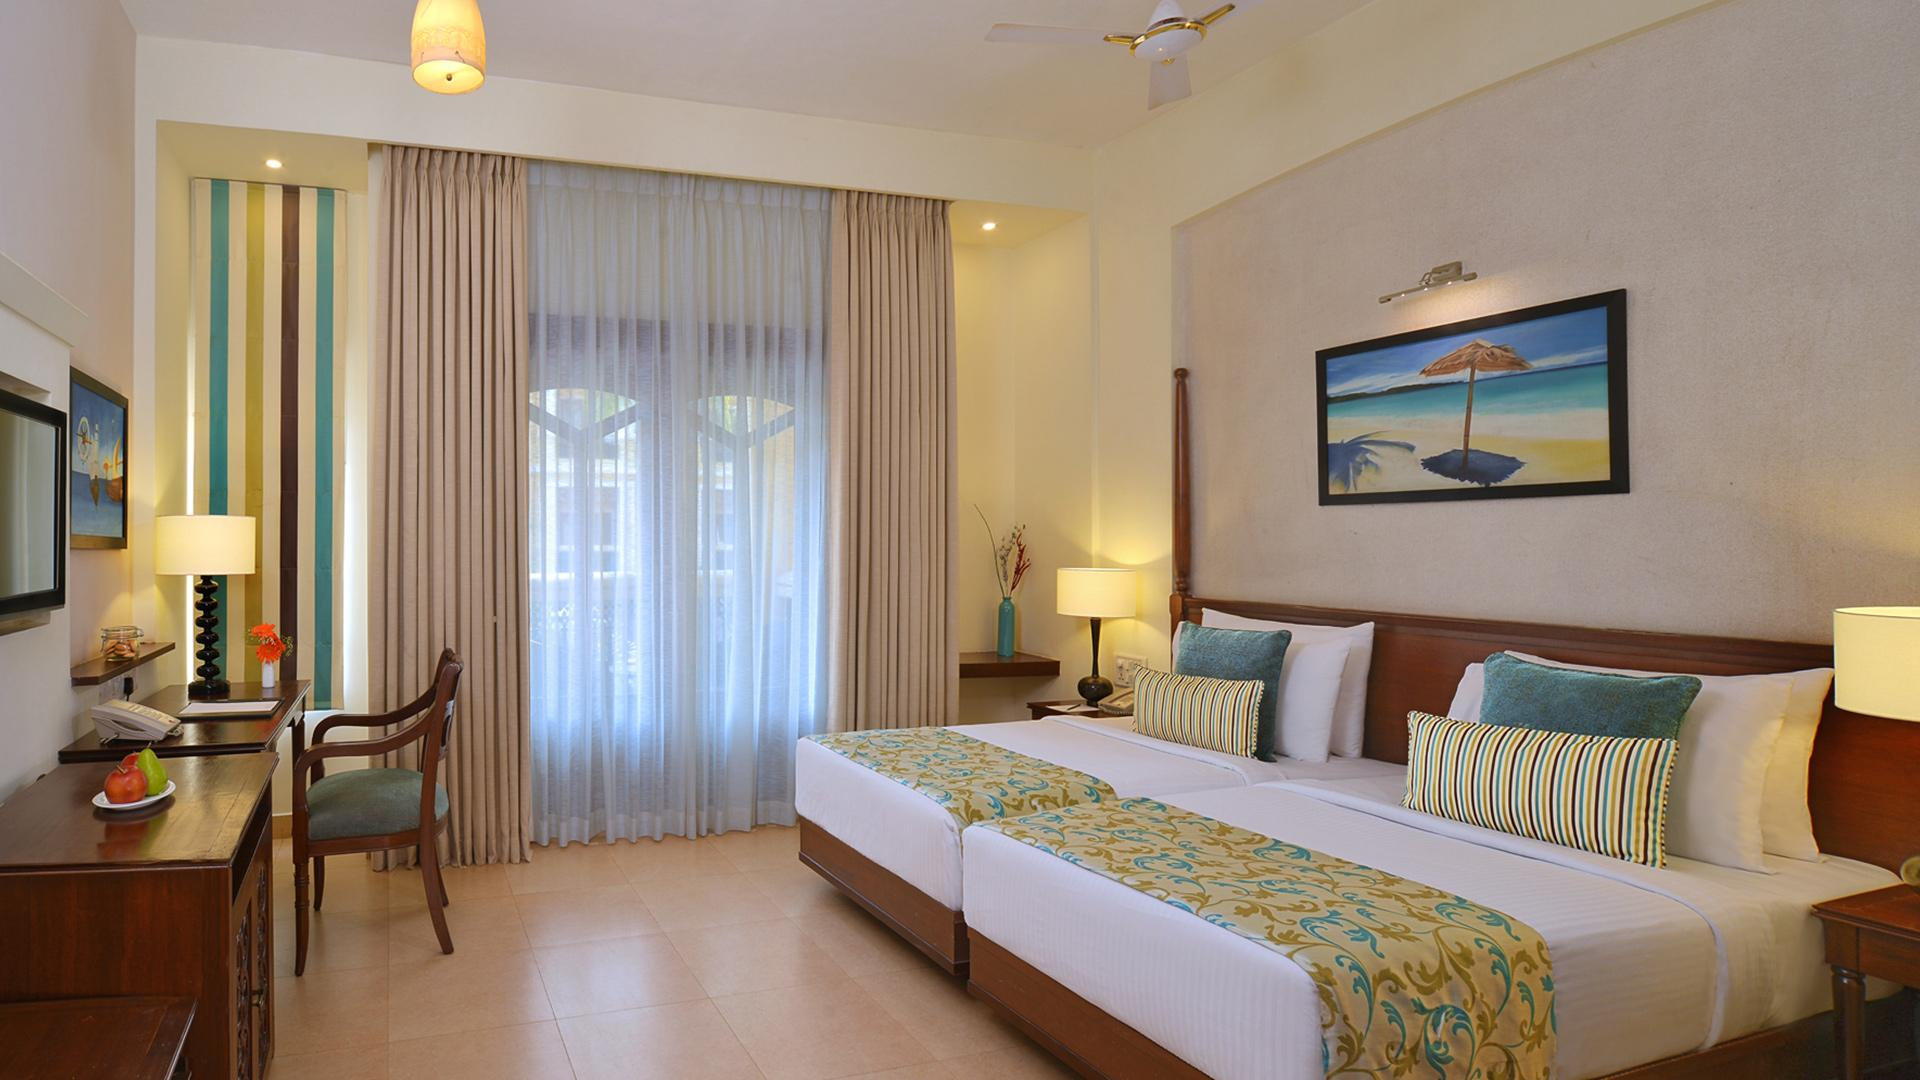 Superior Room image 1 at Country Inn & Suites by Radisson, Goa Candolim by North Goa, Goa, India